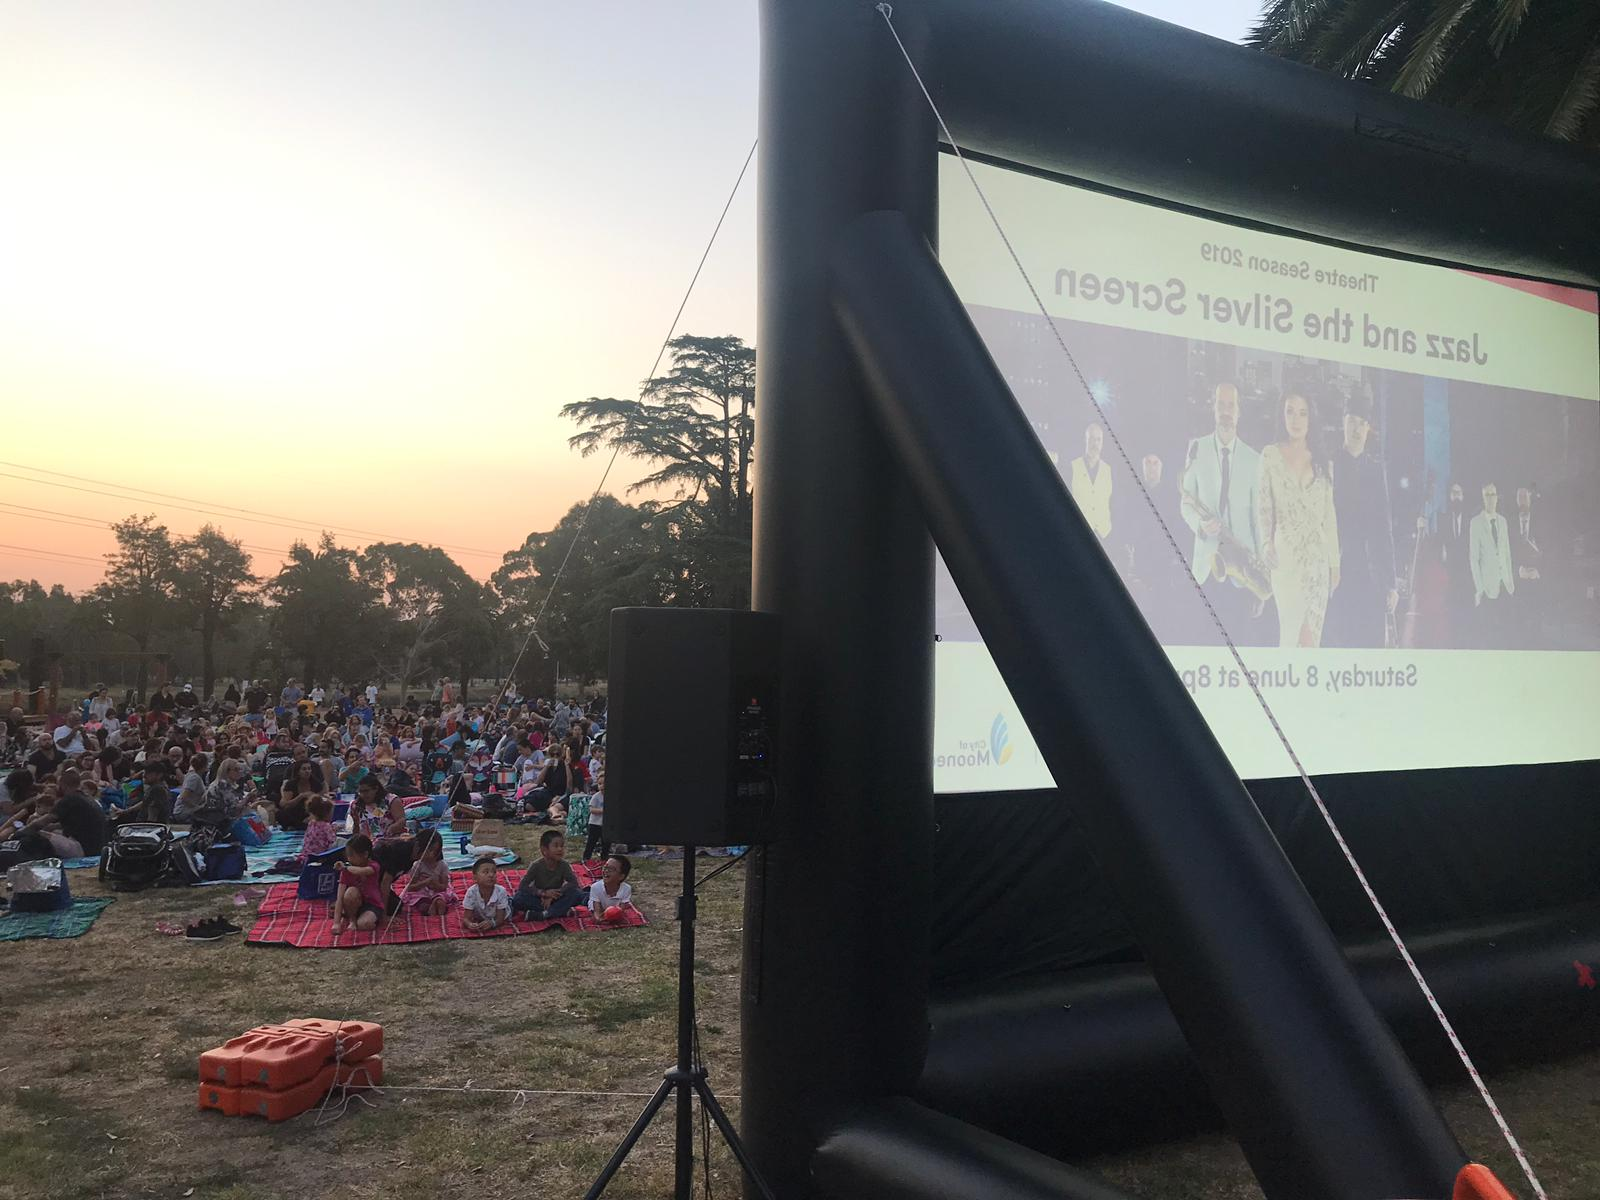 Primary School Fundraiser - Blow Up Cinema provided all you need for school fundraisers - the screen, sound system, BluRay players, microphones and an experienced operator to run the whole show for you. We are also happy to offer you fund-raising ideas so you can make as much money as possible for your school